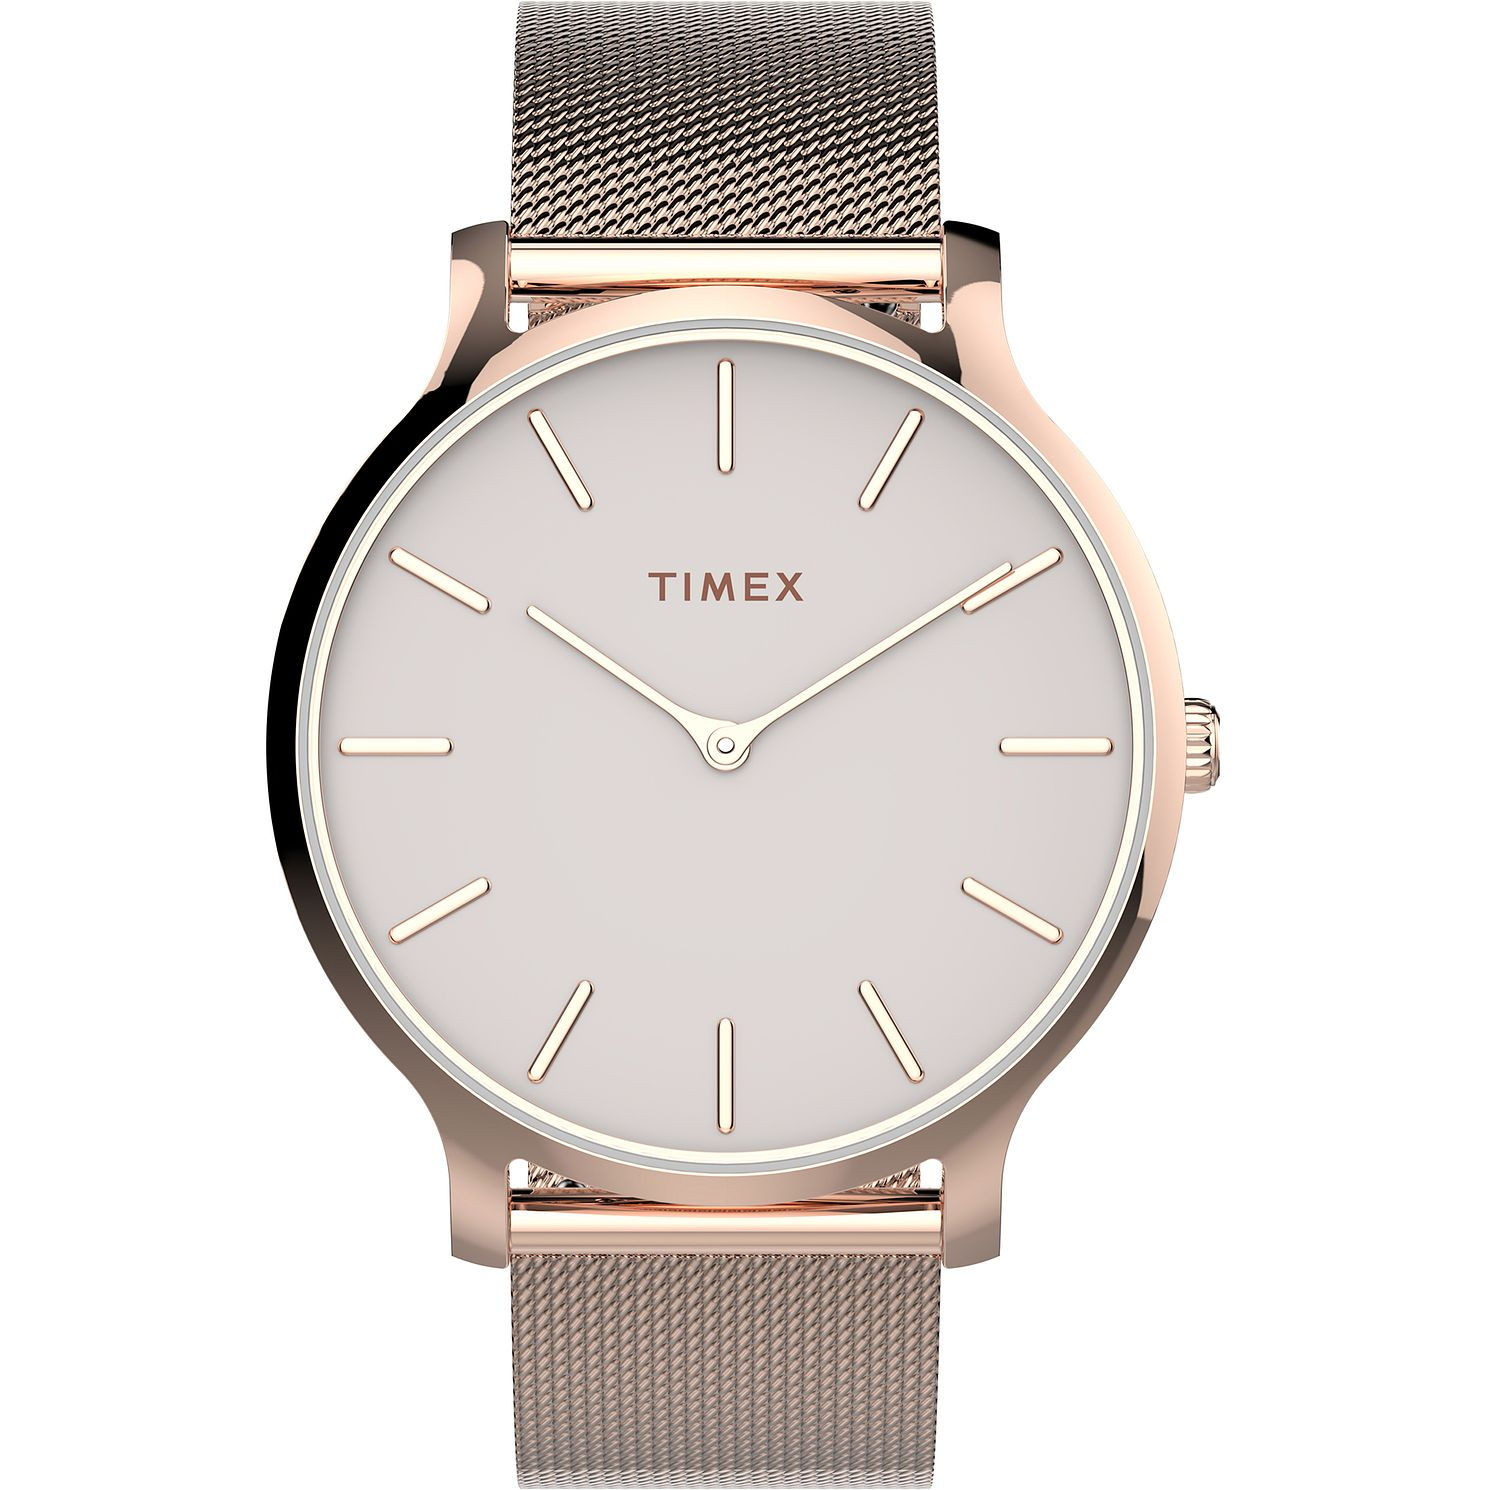 Timex Ladies' Rose Tone Mesh Bracelet Watch - Product number 4514262